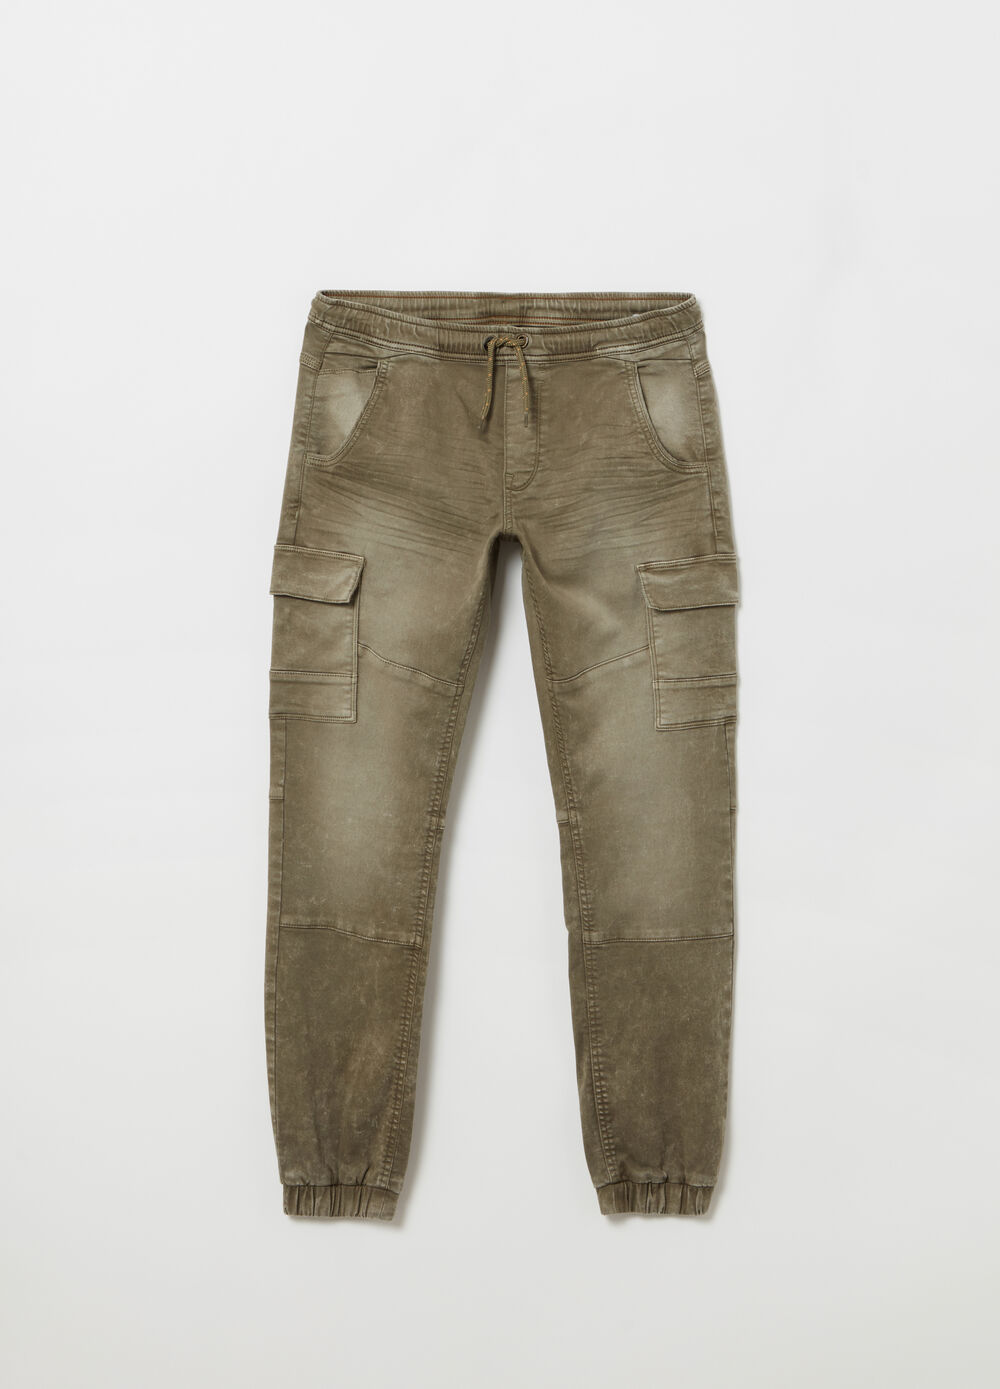 Comfort-fit cargo chino trousers